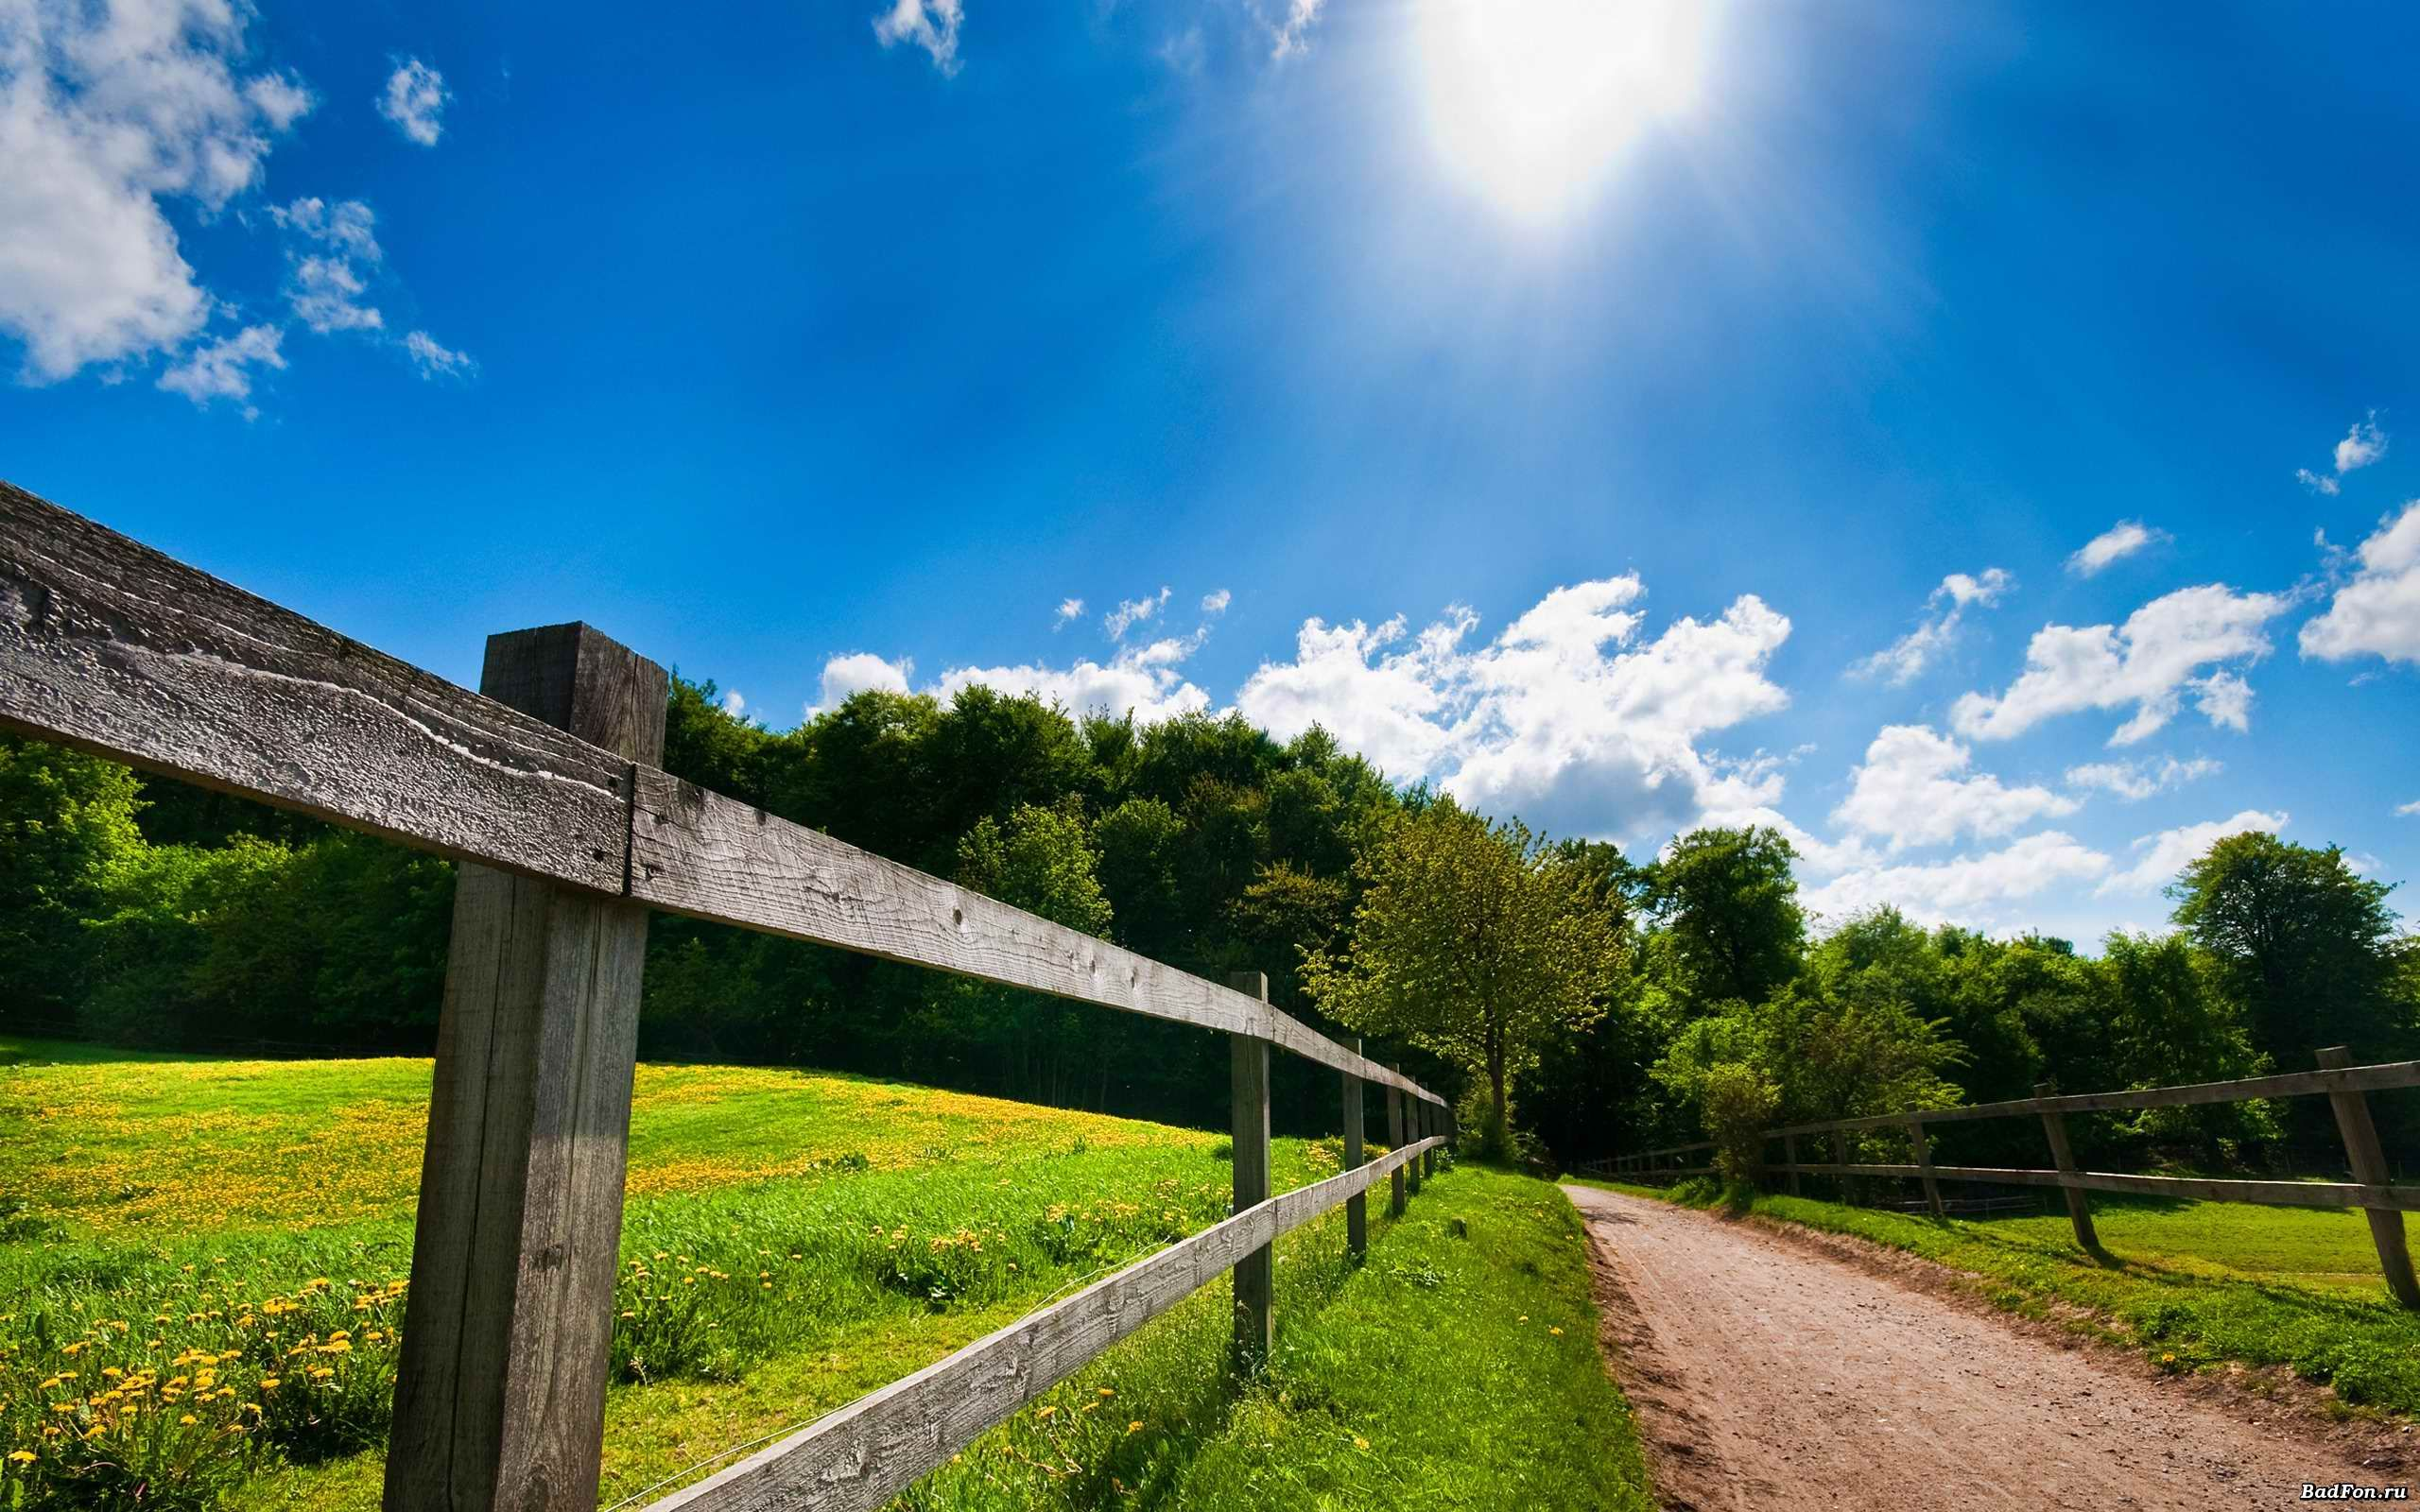 Sunny Bright Day Wallpaper Get Free Top Quality Sunny Bright Day Wallpaper For Your Desktop Pc Background Ios Or Android Mobi Country Roads Nature Landscape